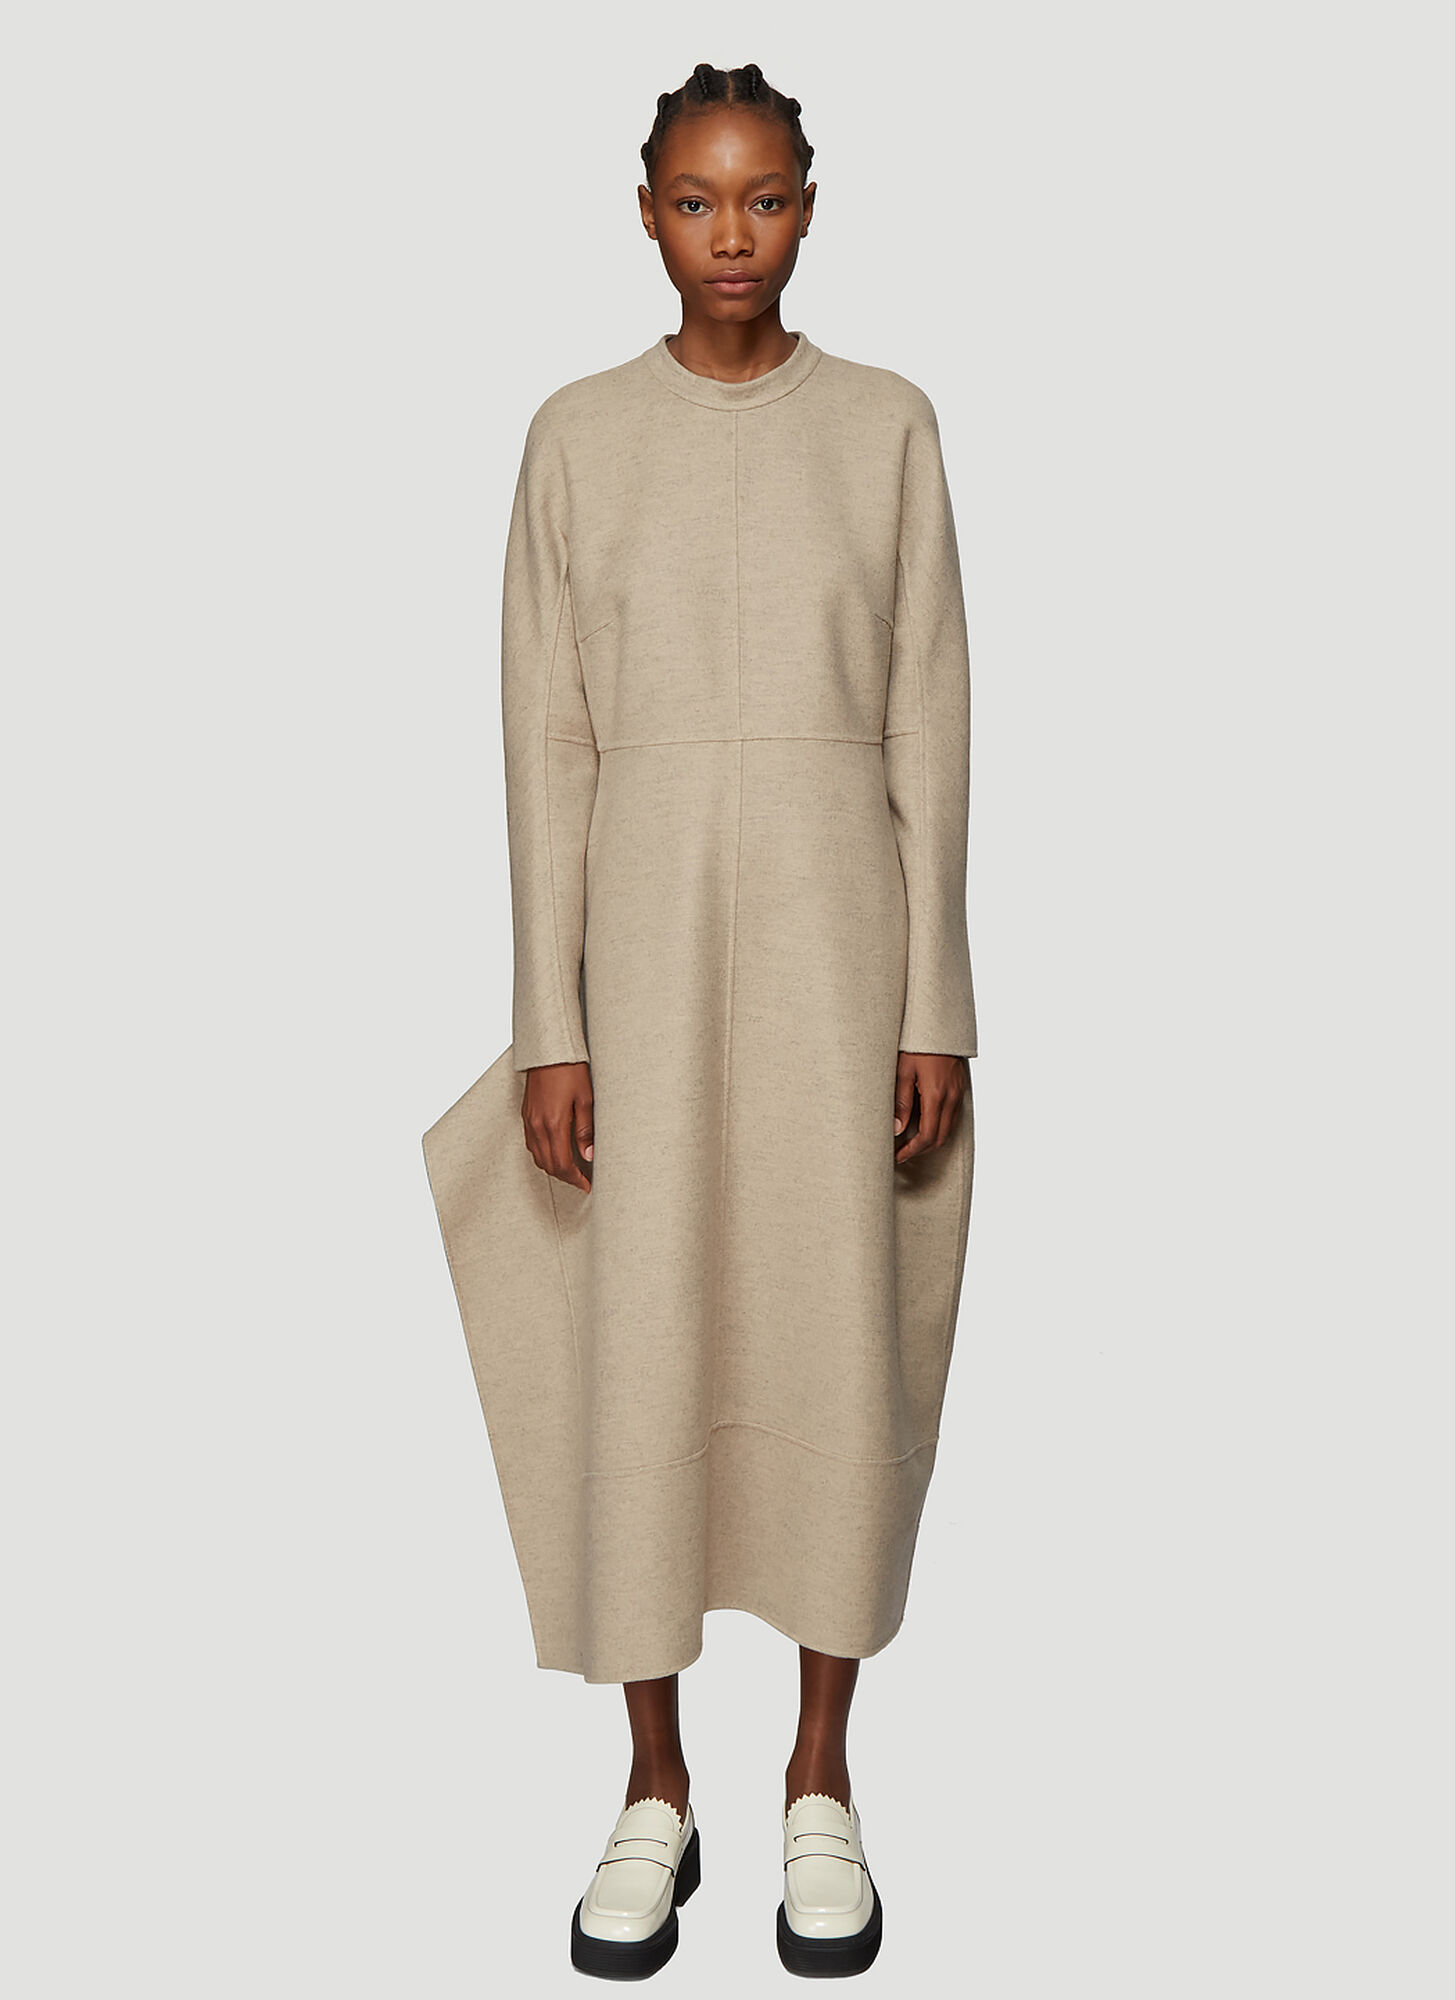 Jil Sander Leven Felted-Wool Dress in Beige